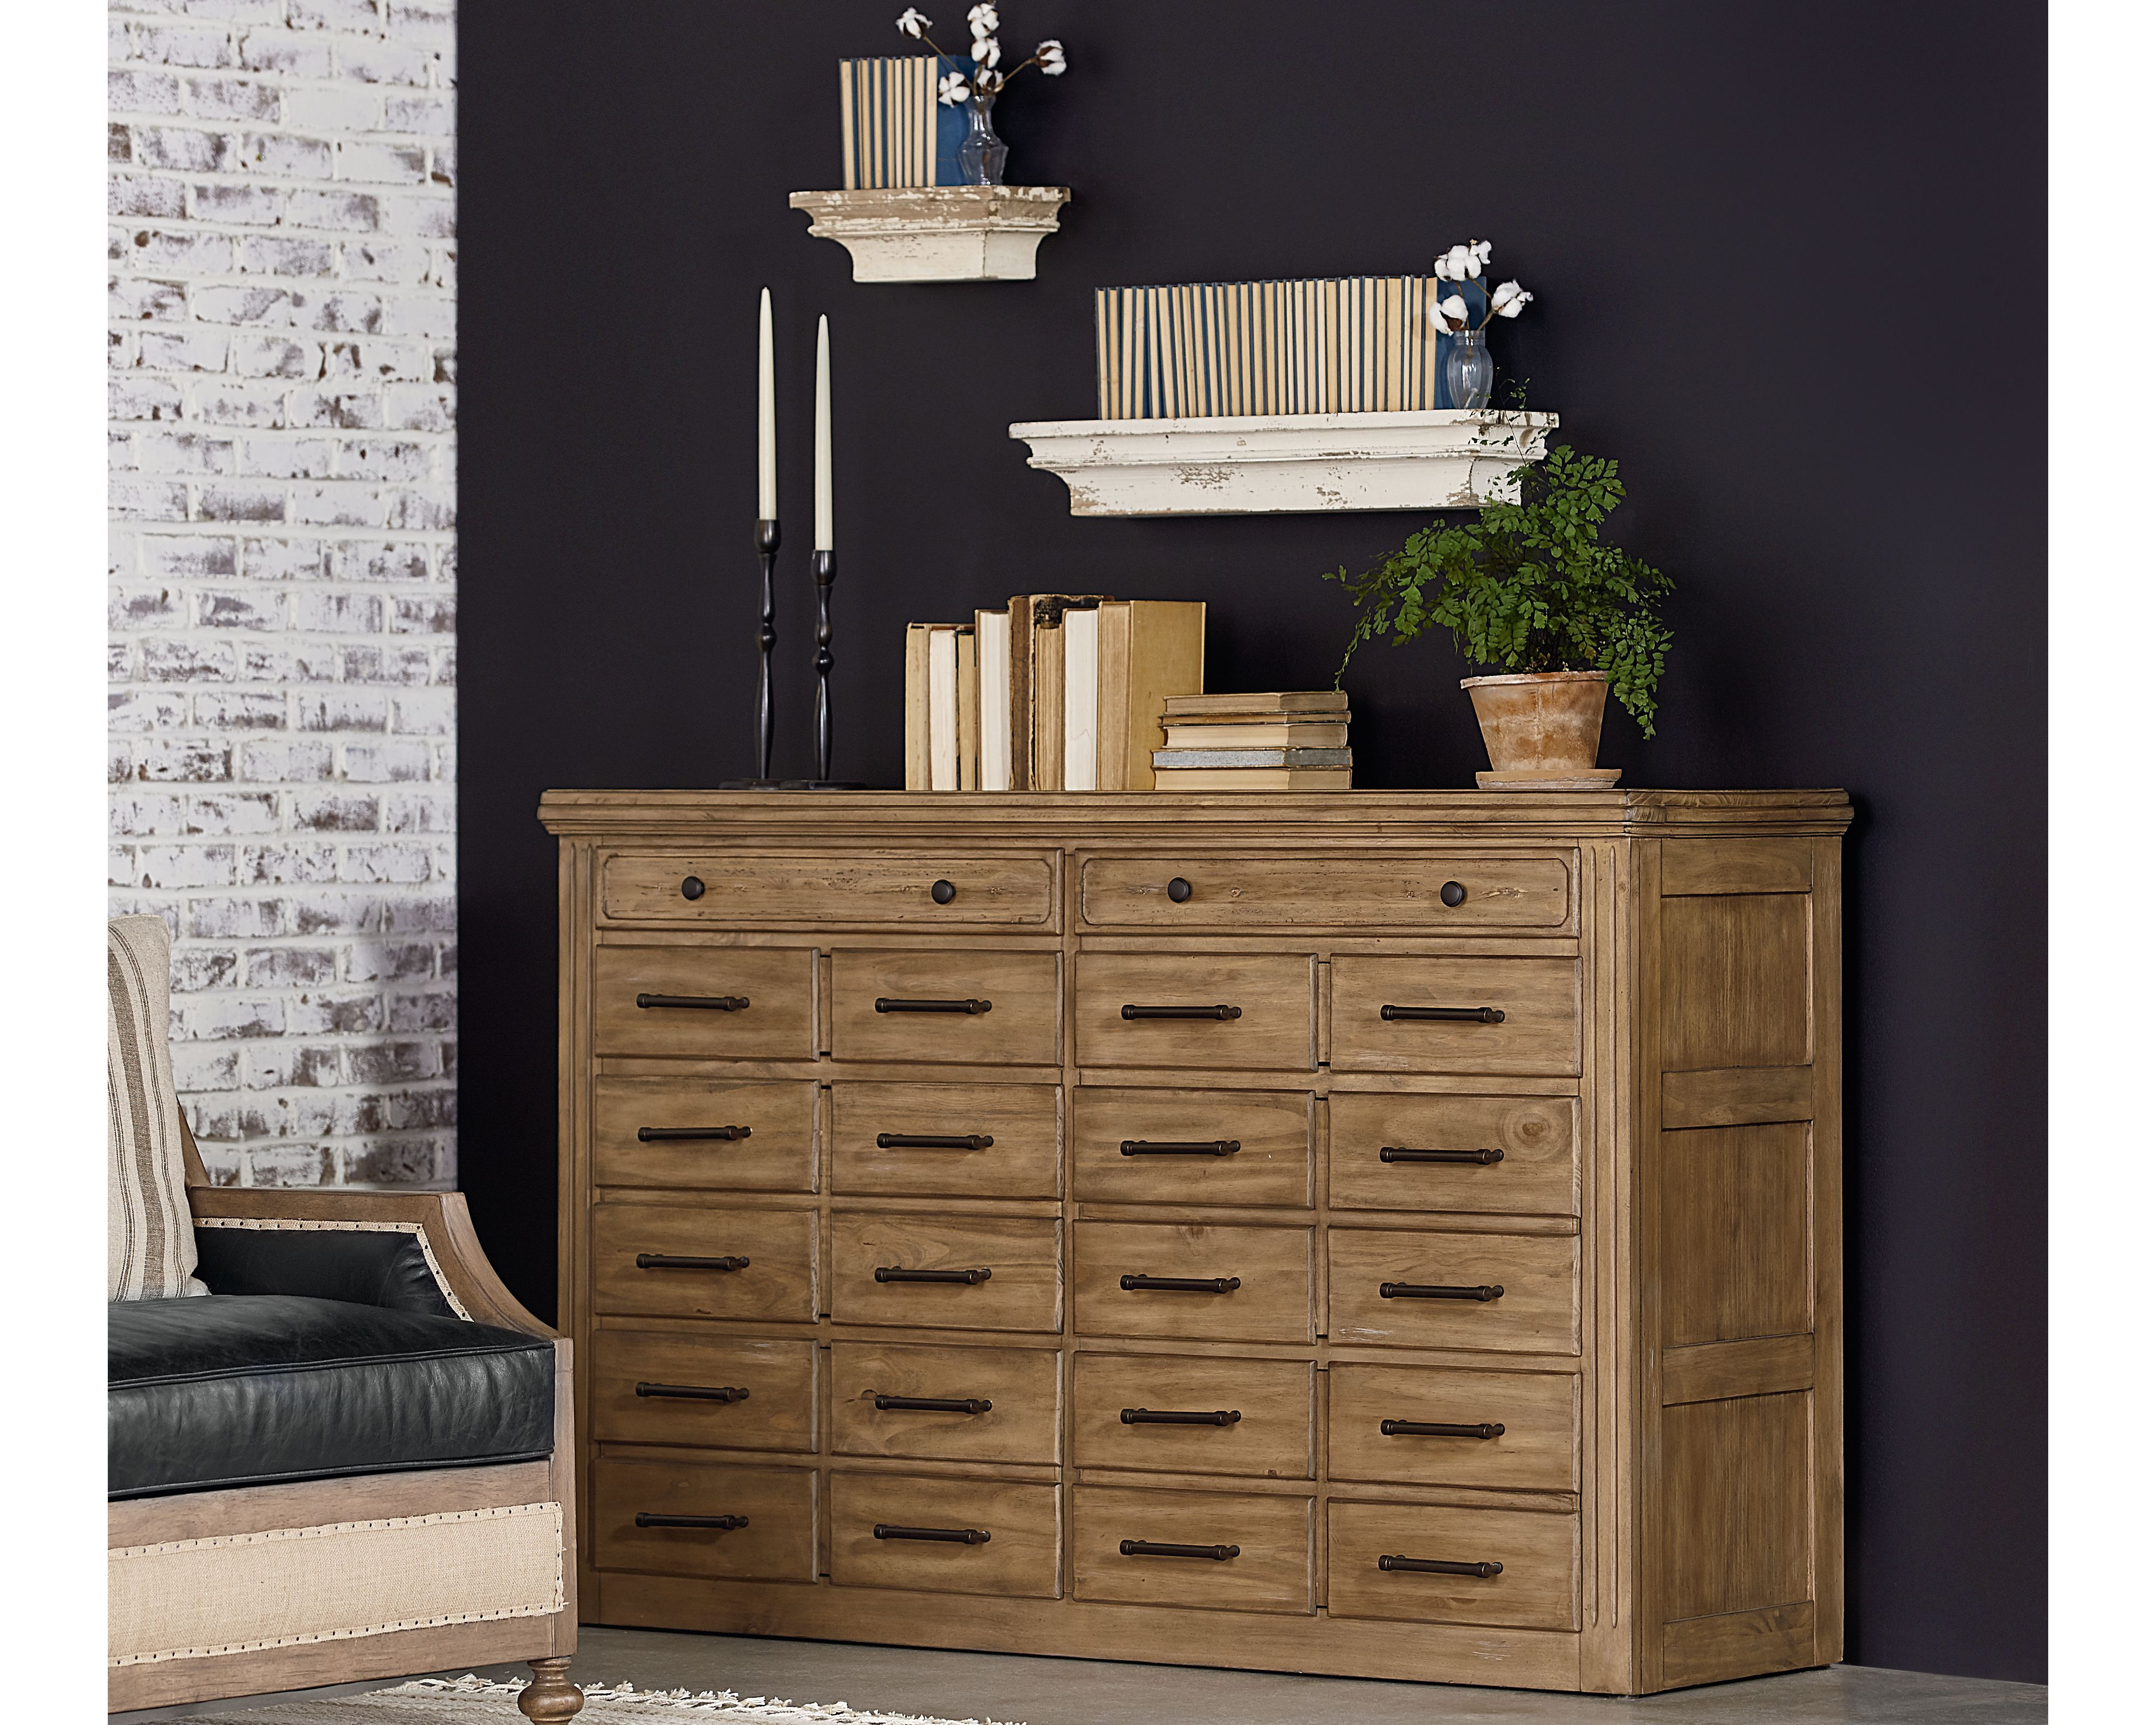 Architectural General Store Sideboard Magnolia Home